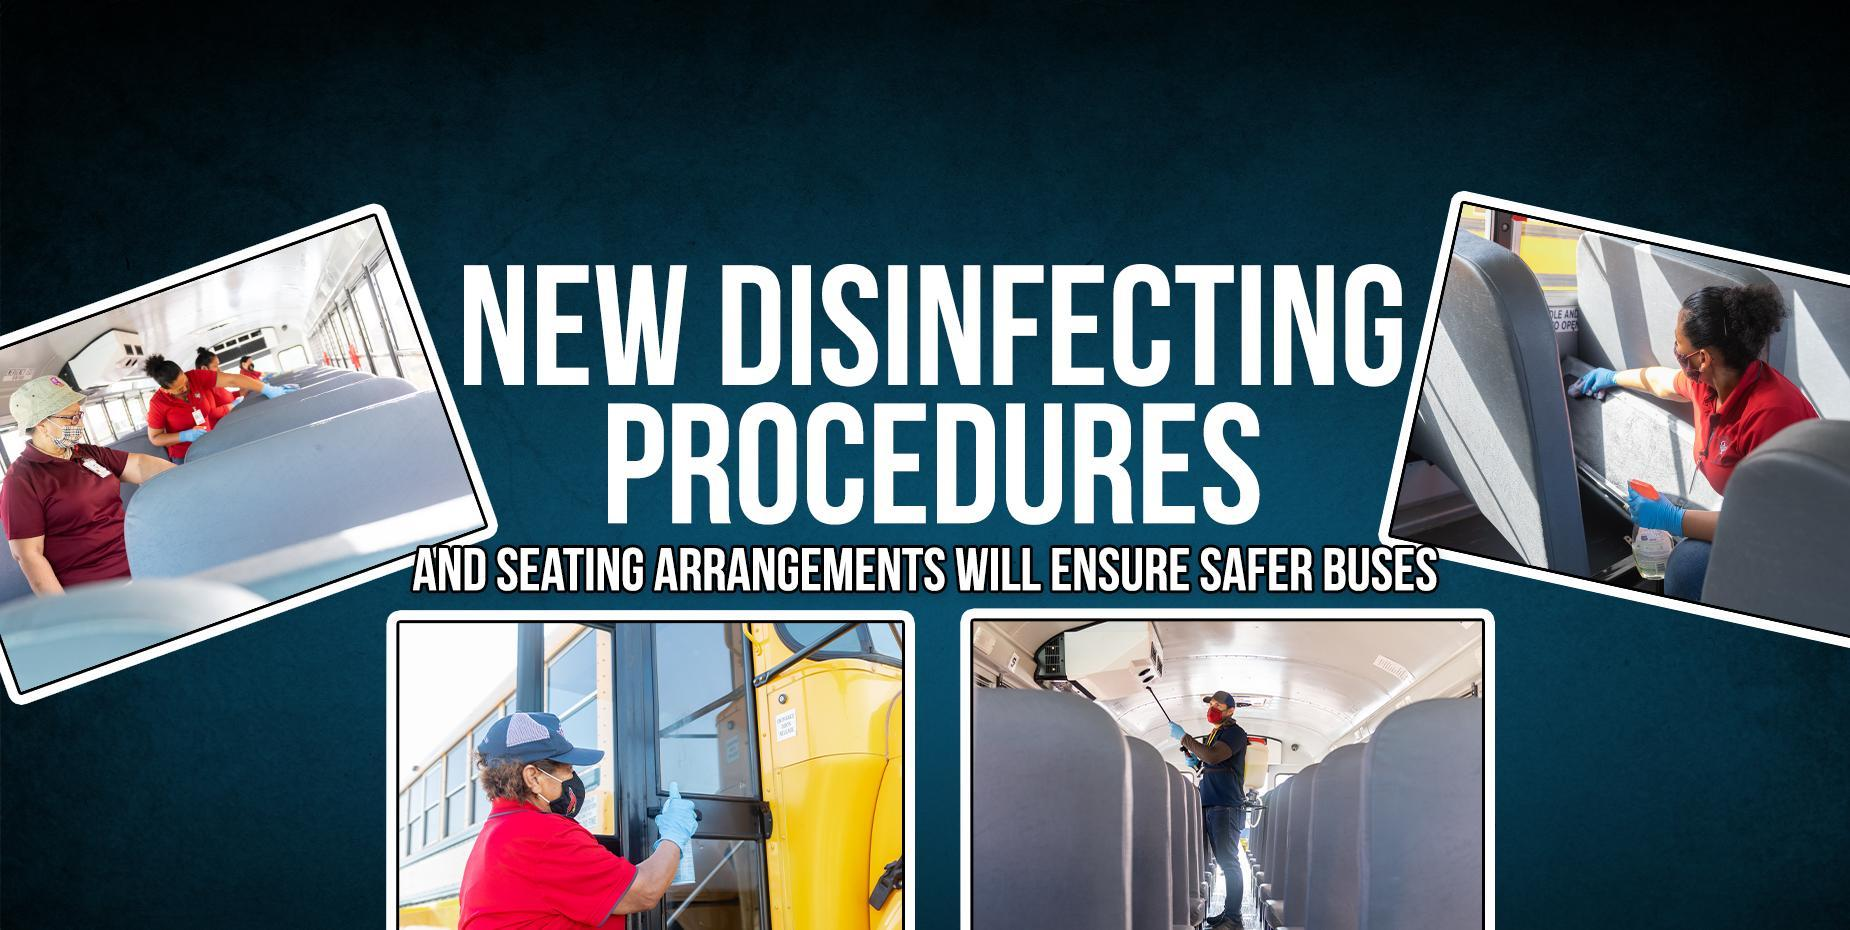 New disinfecting procedures and seating arrangements will ensure safer buses